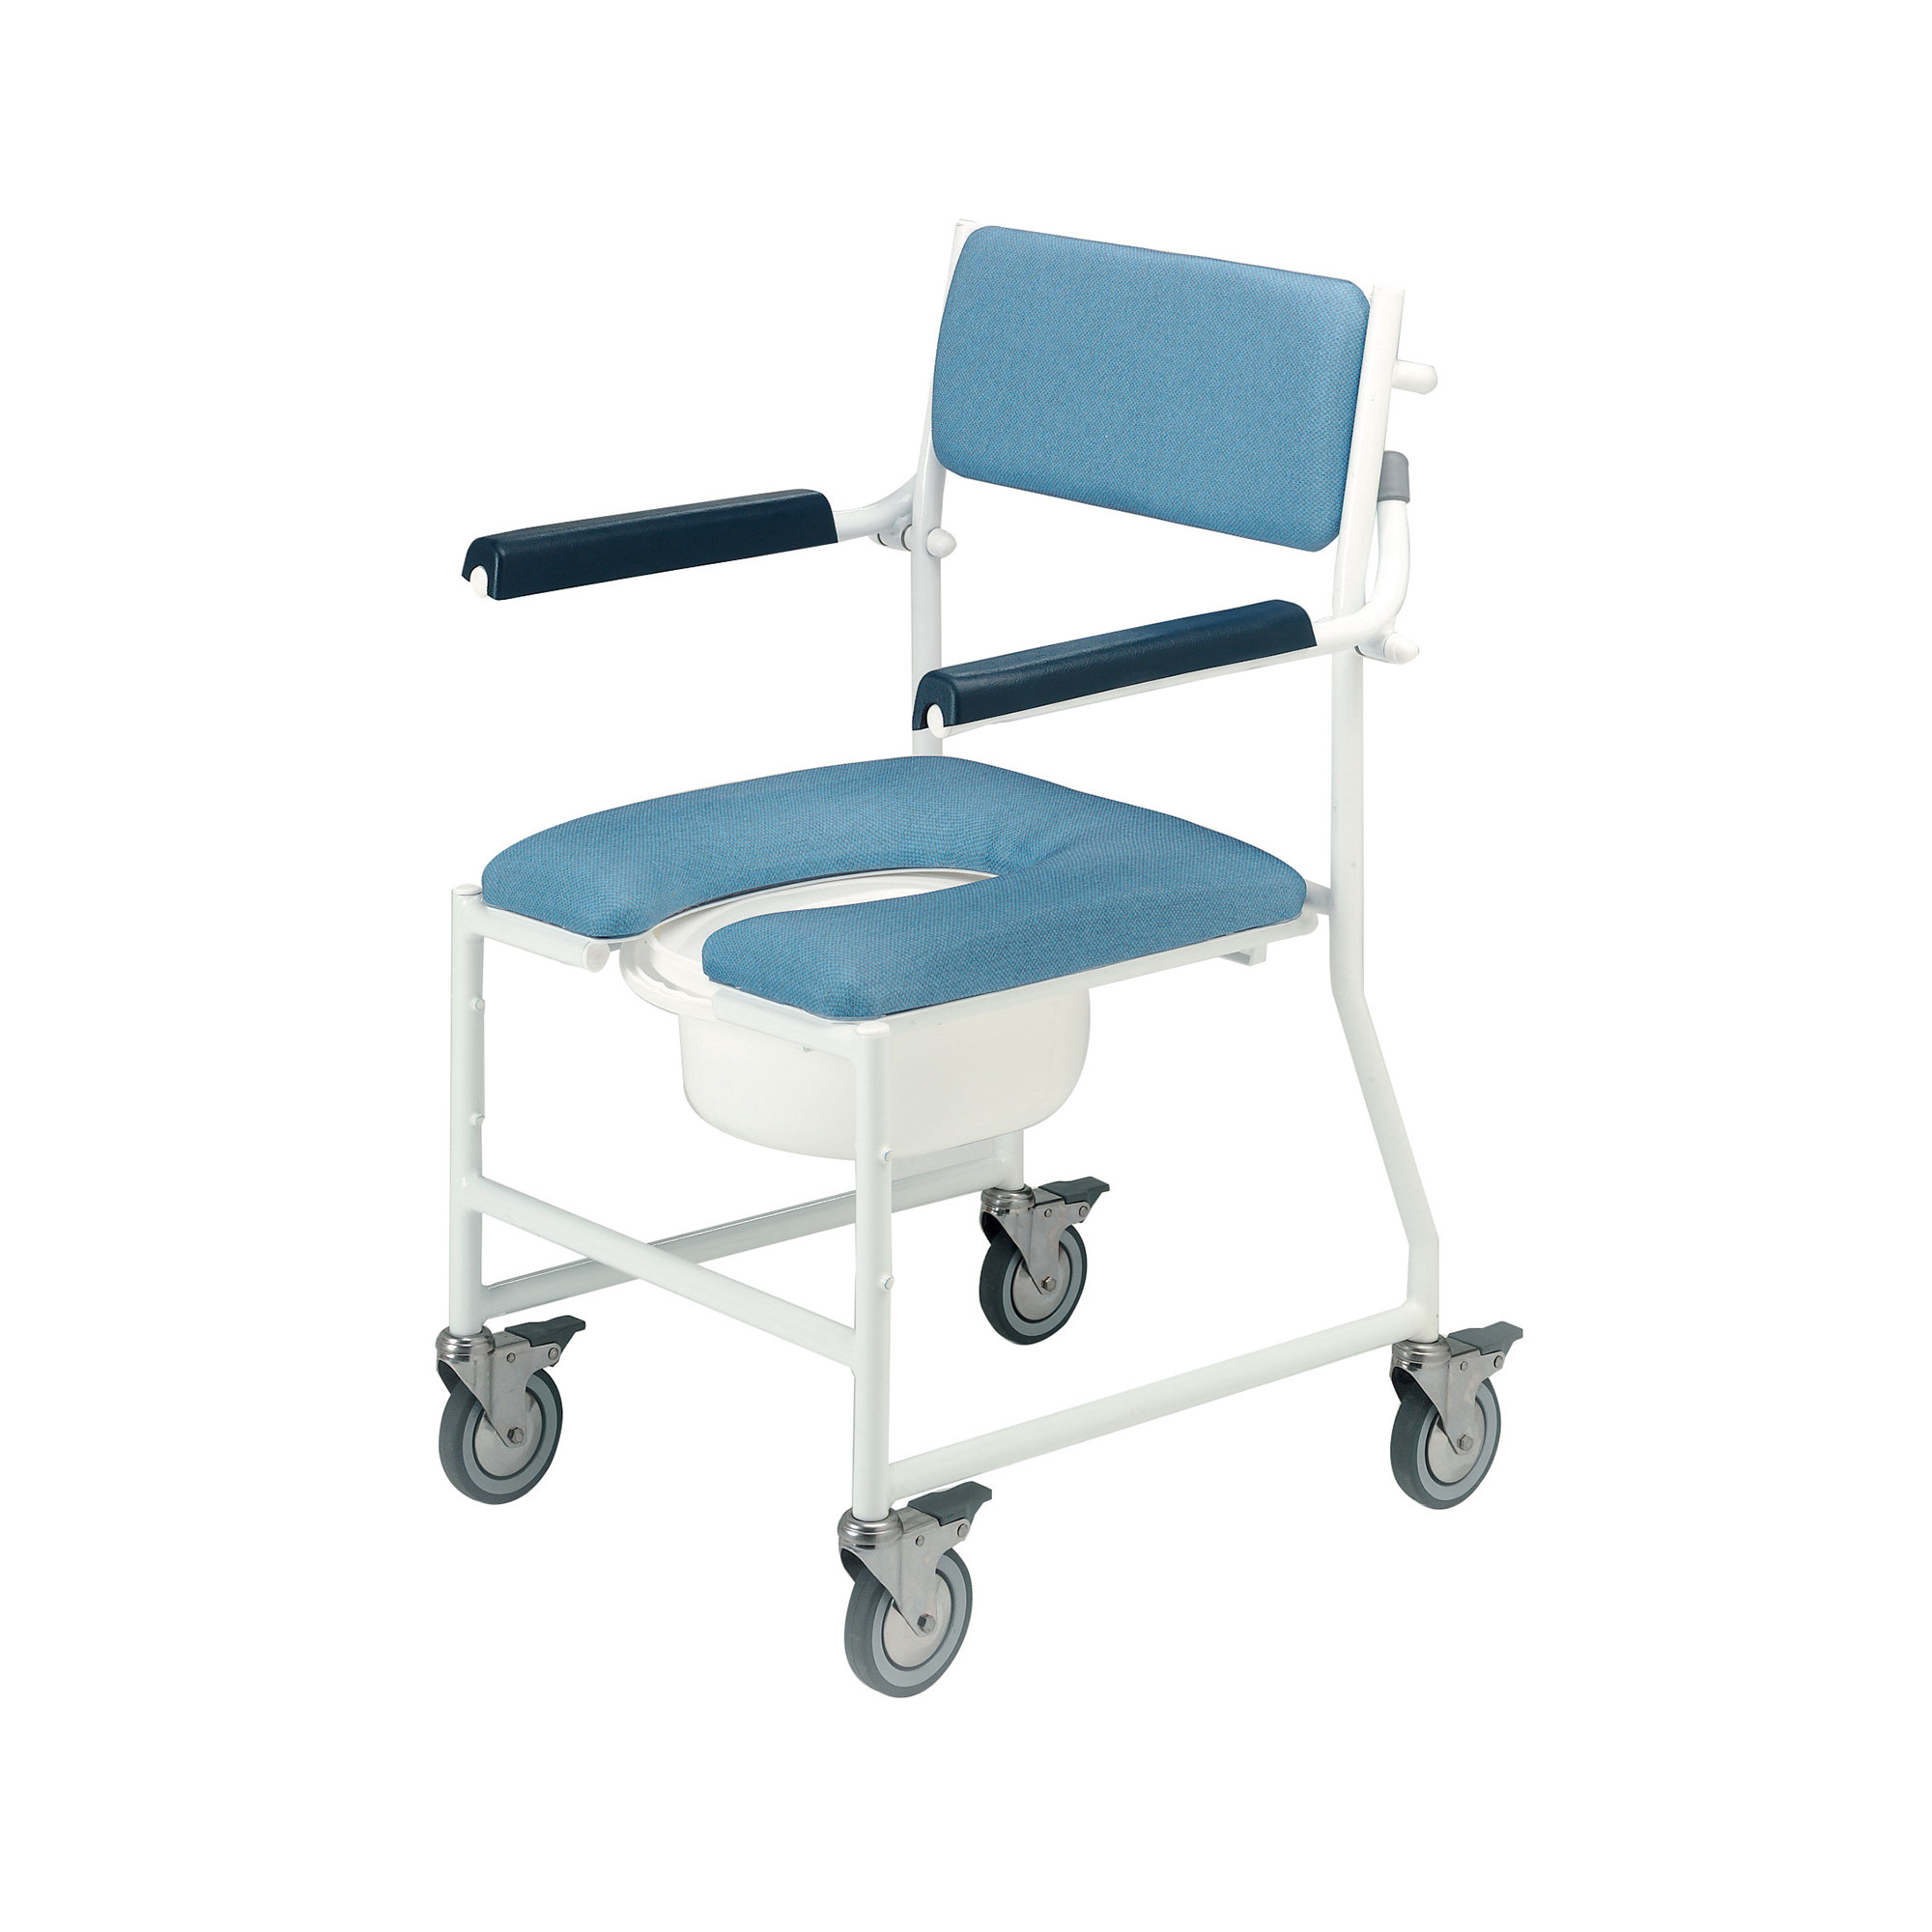 4141G 4BC Deluxe Dual Mobile Shower Chair Roma Medical